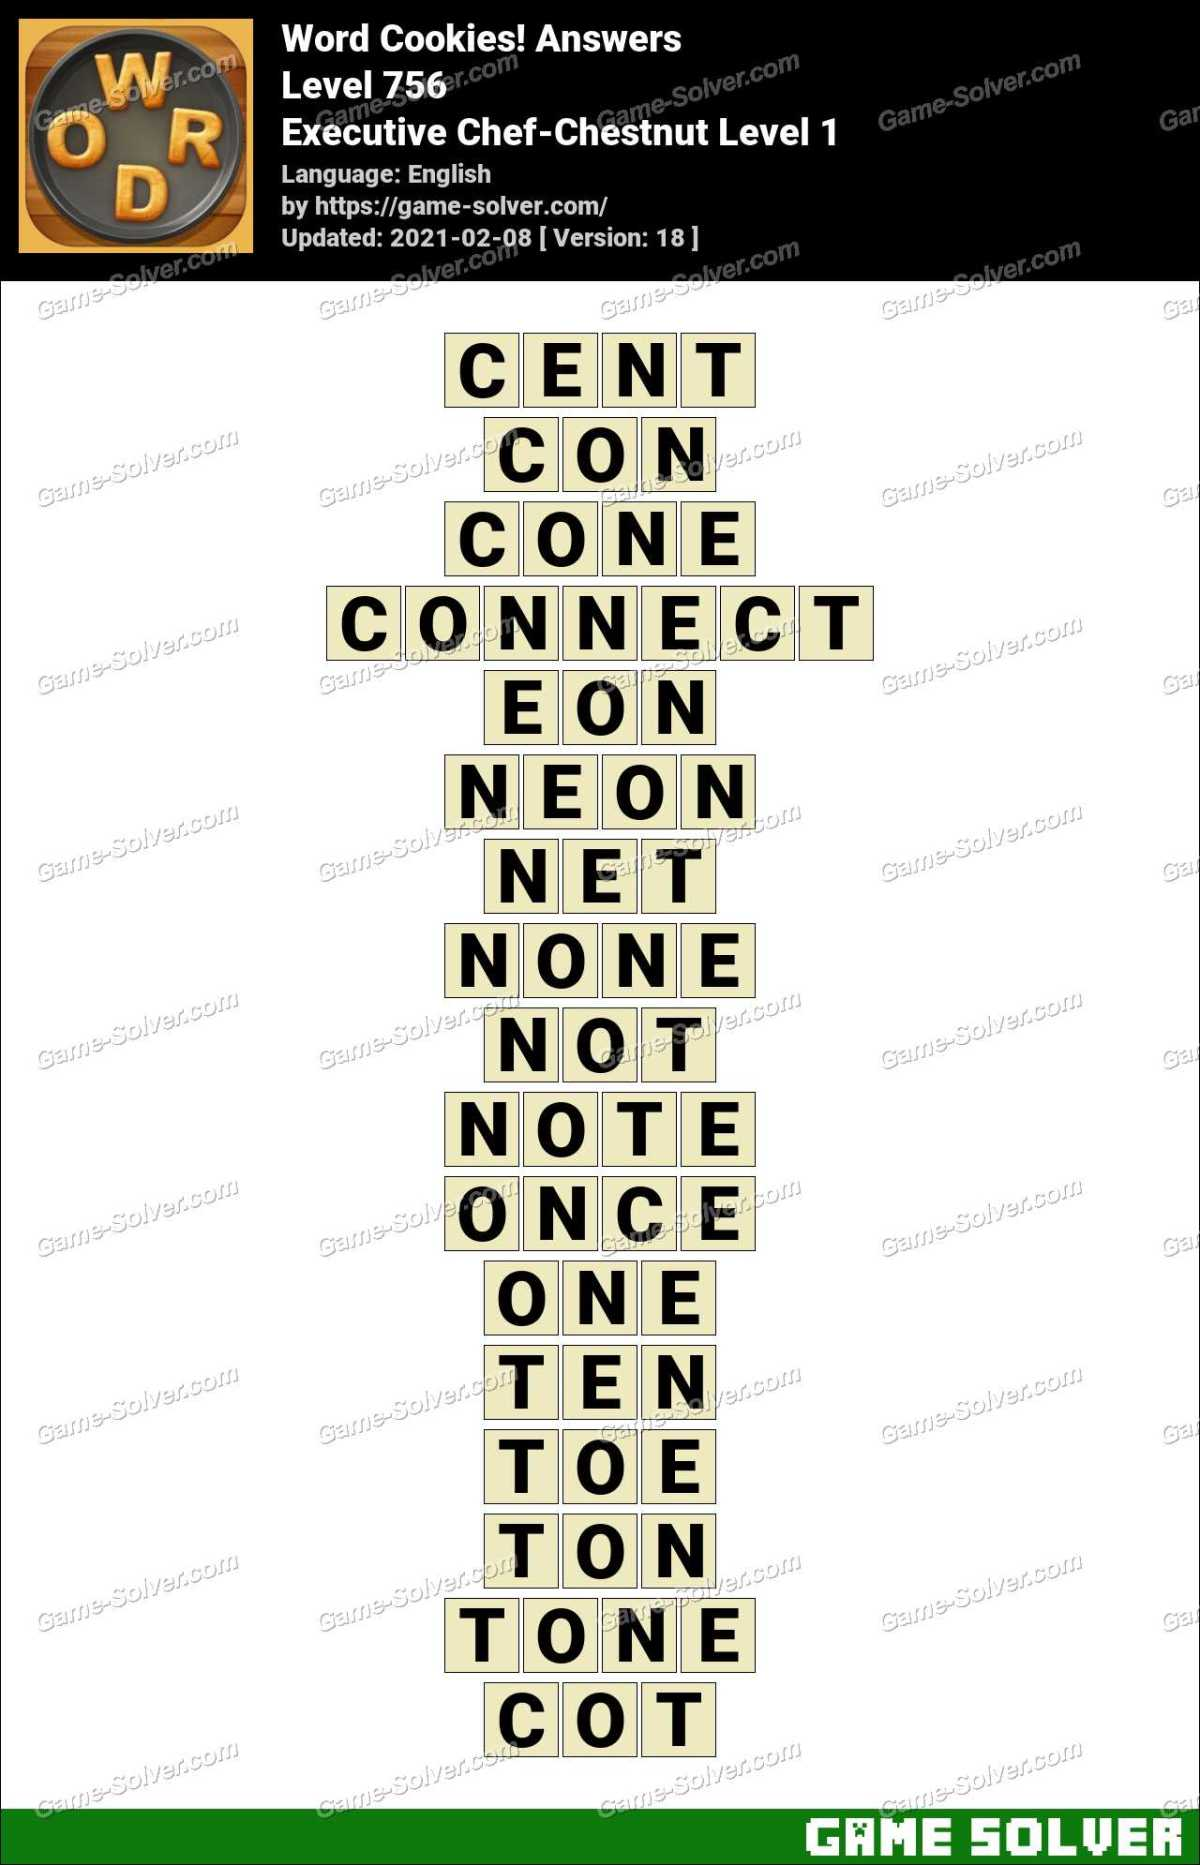 Word Cookies Executive Chef-Chestnut Level 1 Answers